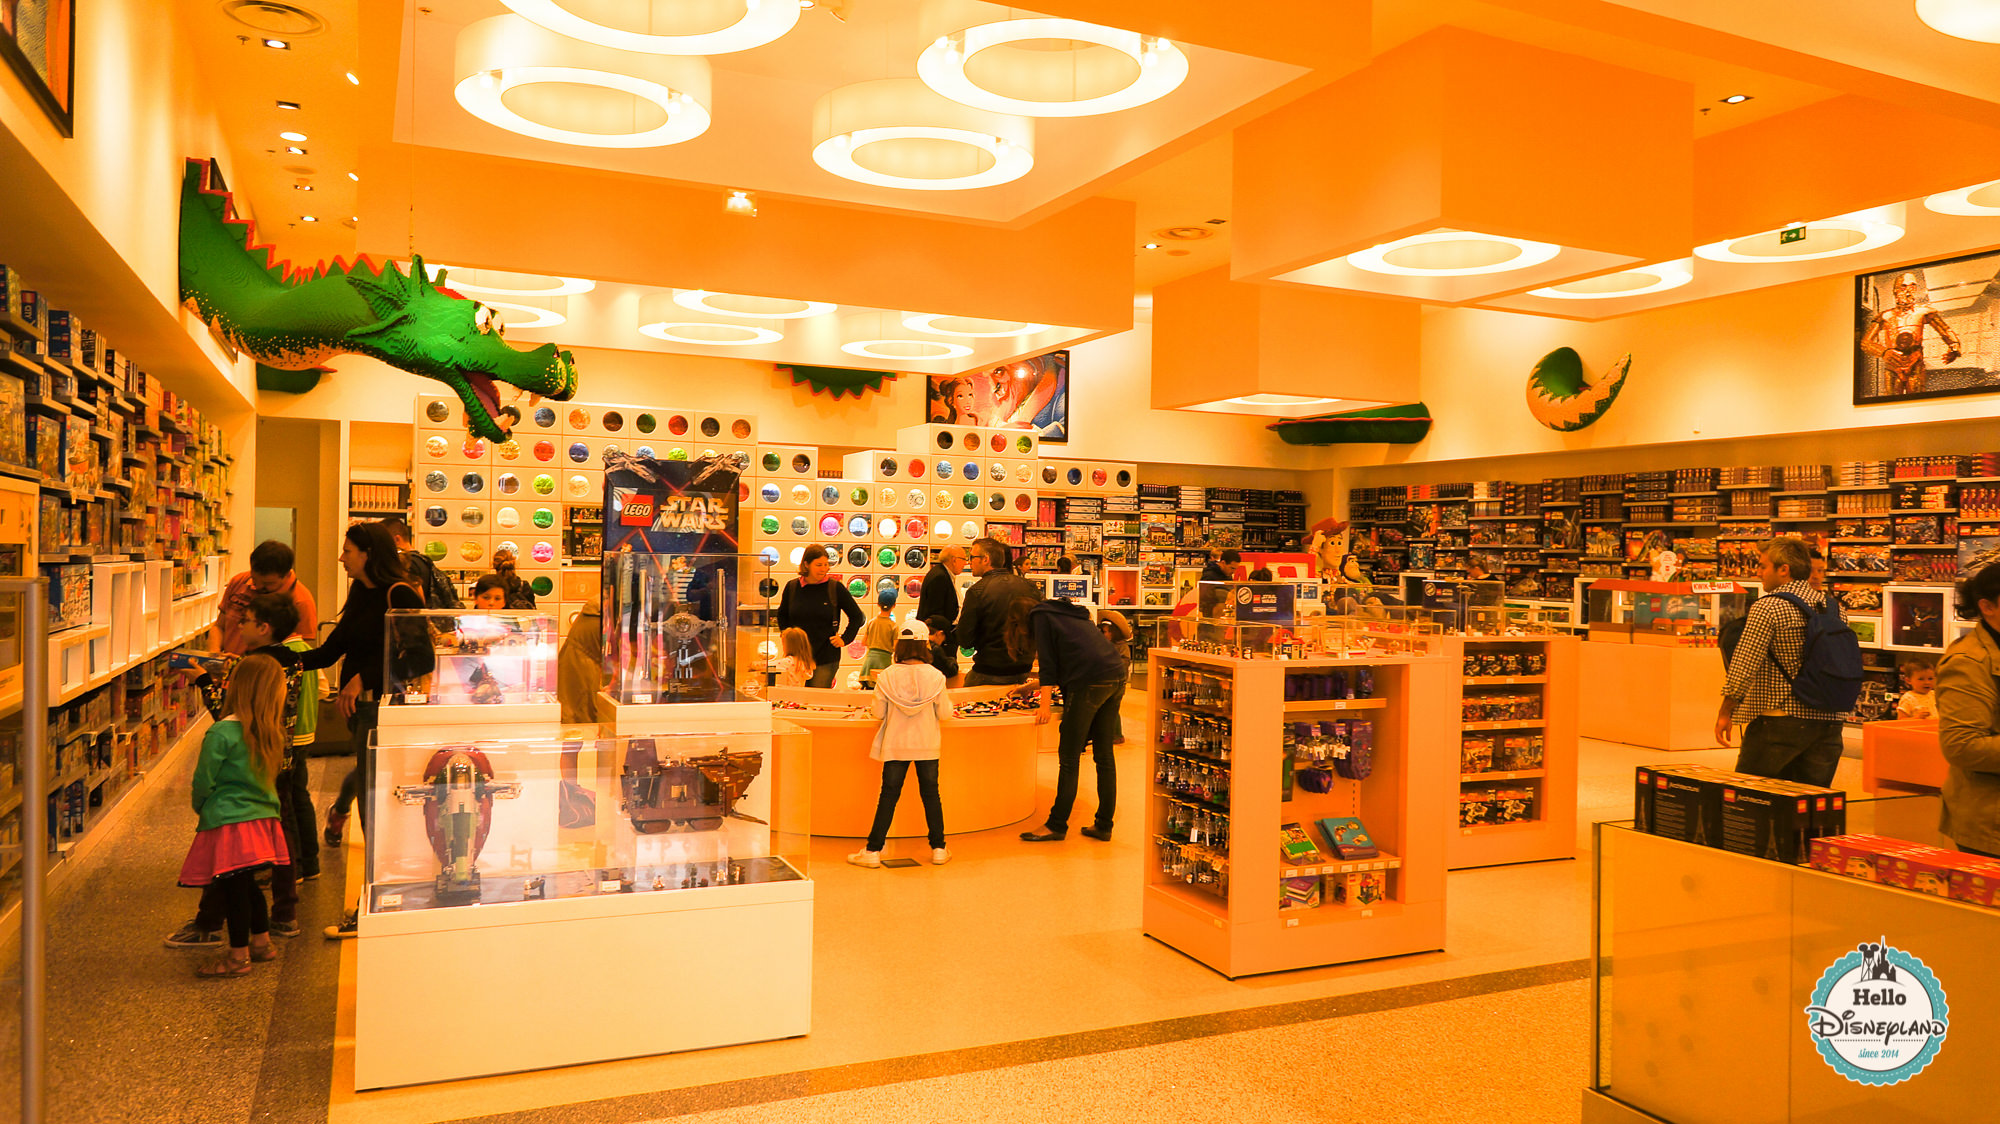 Lego Store - Disney Village